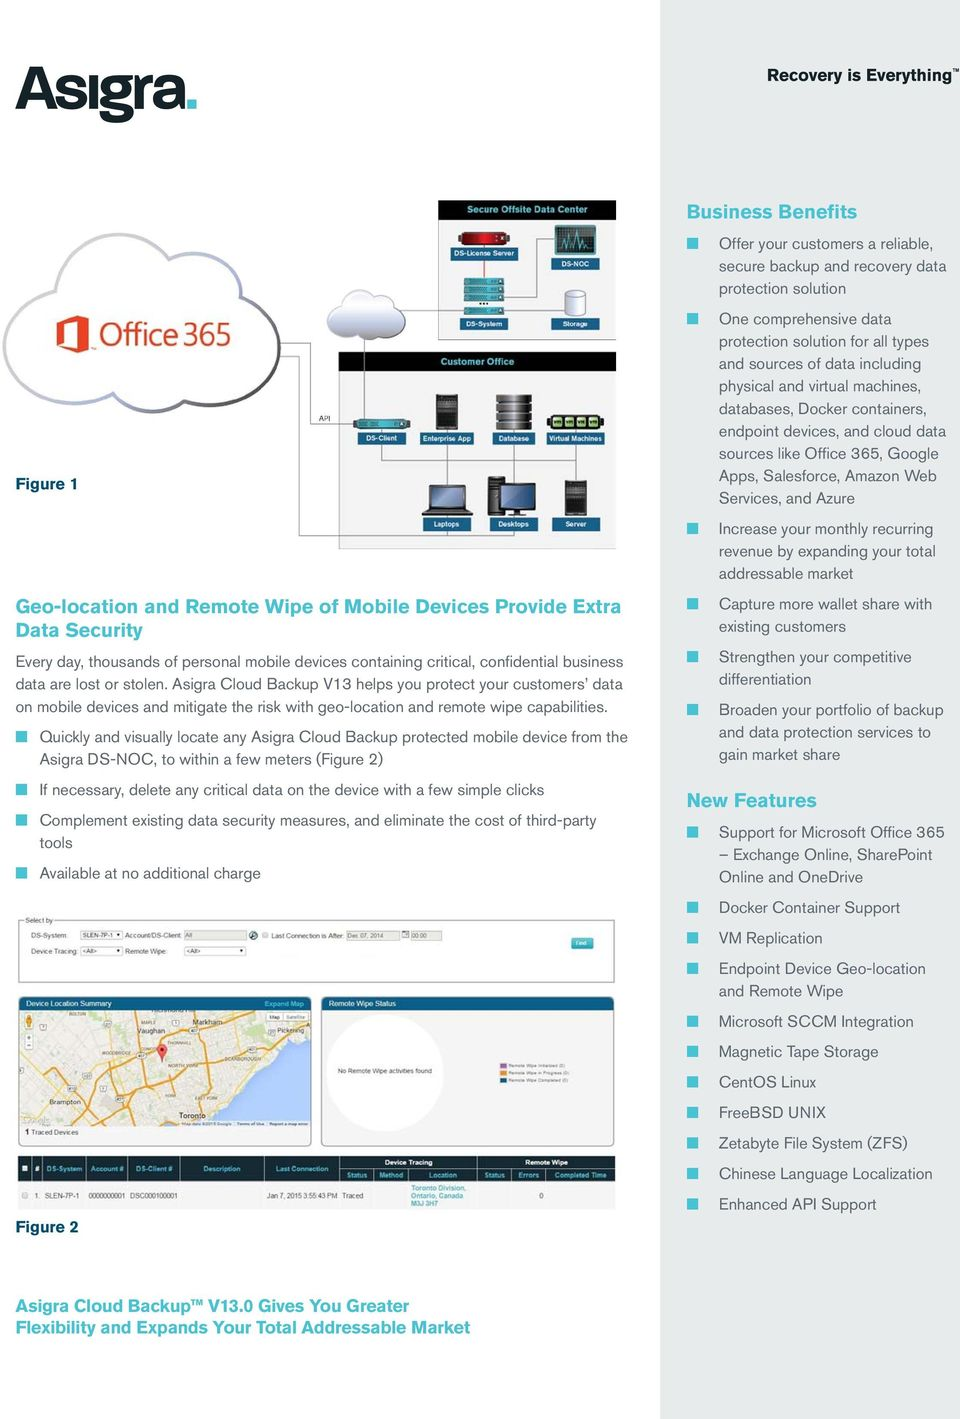 Quickly and visually locate any Asigra Cloud Backup protected mobile device from the Asigra DS-NOC, to within a few meters (Figure 2) If necessary, delete any critical data on the device with a few